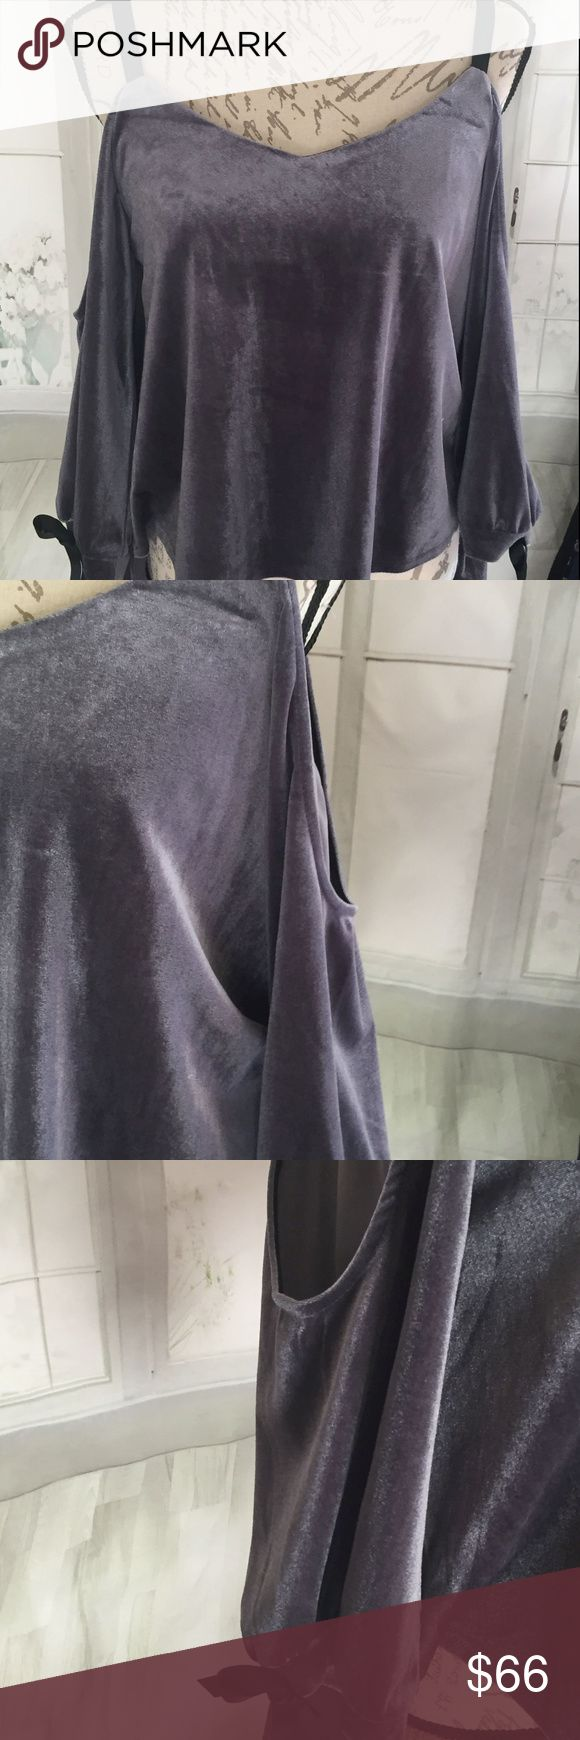 """Romeo + Juliet Couture Women's Gray M NWT Cold Sho Has cold shoulders and an open back. 96% polyester and 4% spandex and lined in 100% polyester. Hand wash cold. 19""""-22"""" from bottom of strap, 17"""" bust. High low 10 ounces. Romeo & Juliet Couture Tops"""